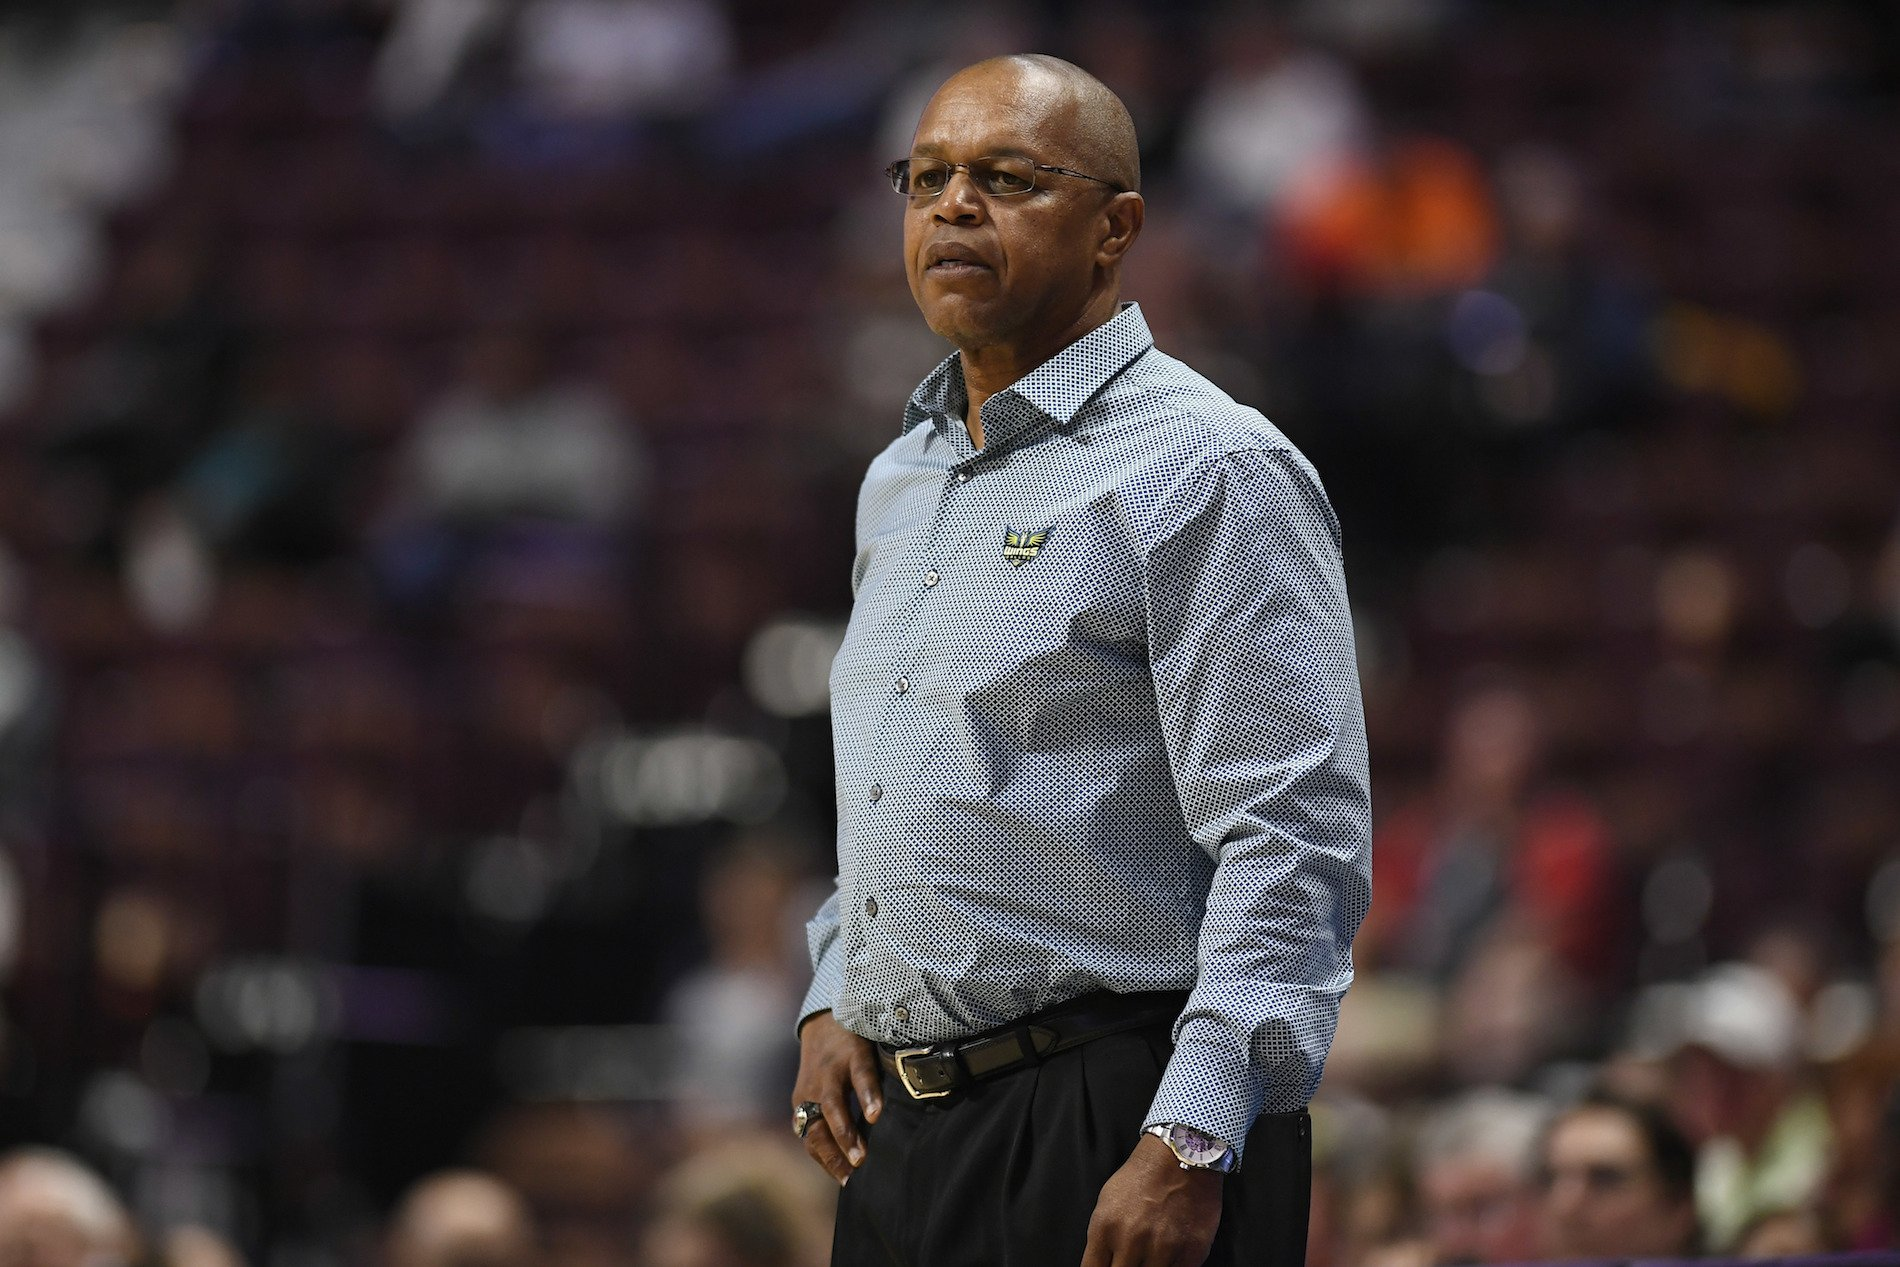 WNBA's Dallas Wings fire head coach after argument with team president: https://t.co/qwKOSDBXXc https://t.co/t0IQULdhY9